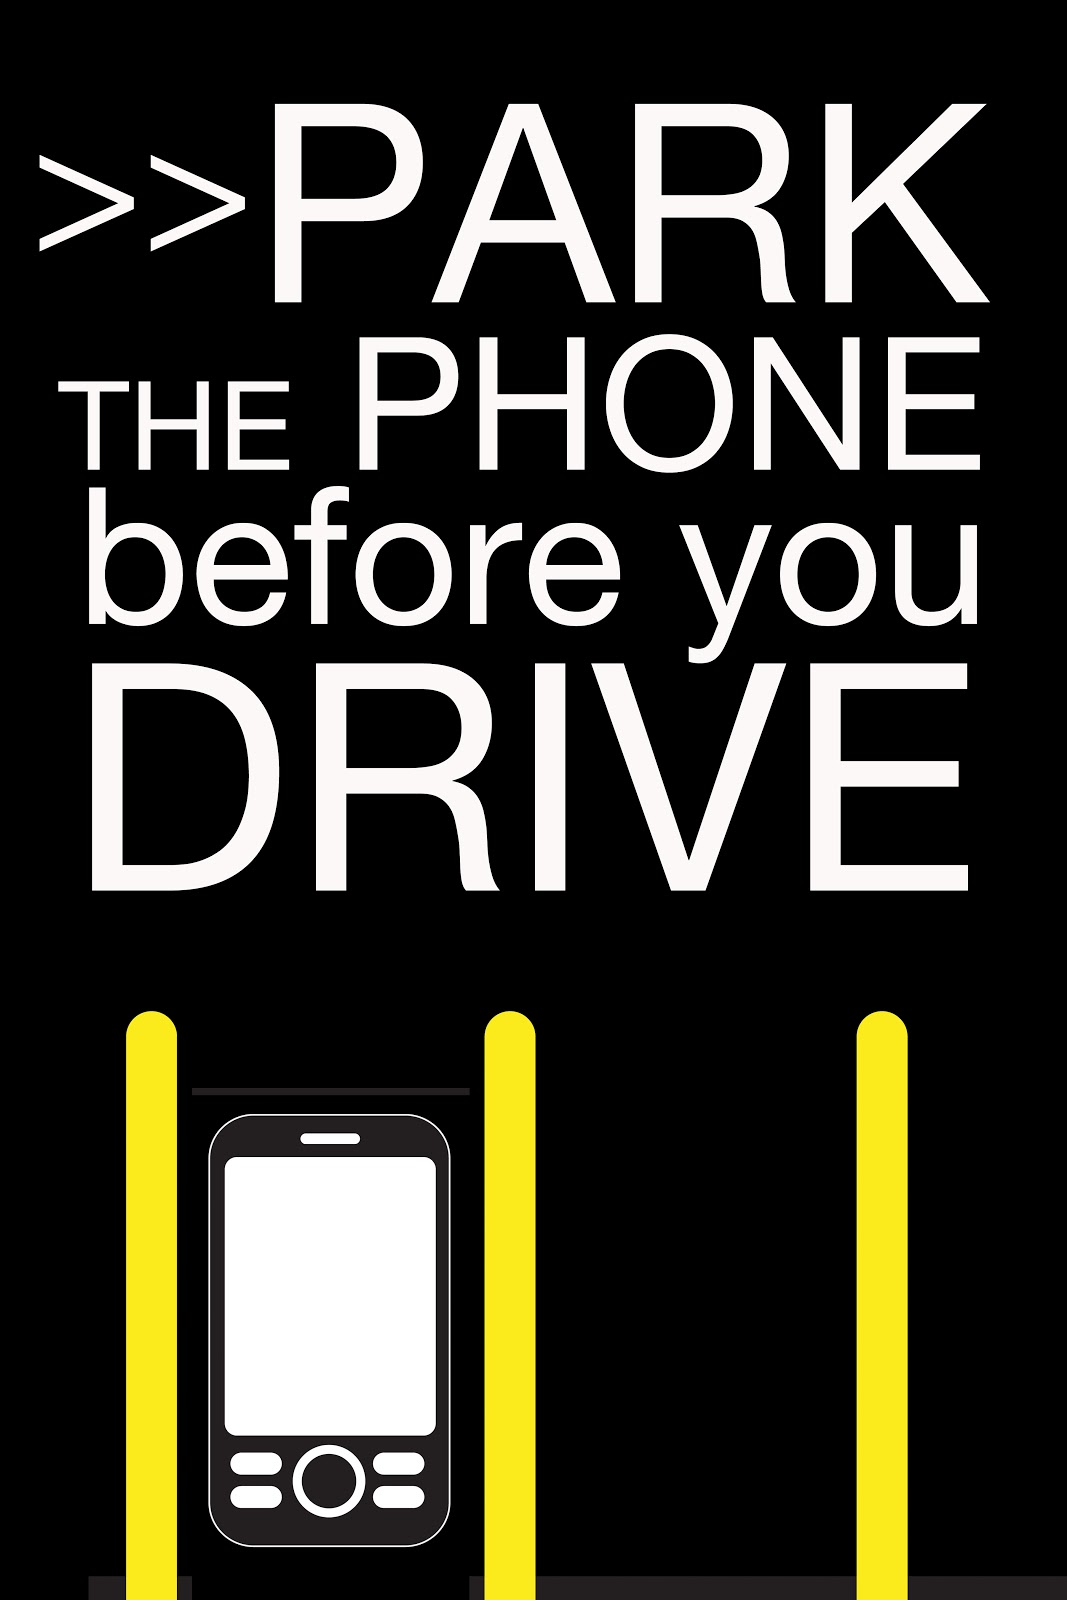 Texting And Driving Quotes Stop The Texts Stop The Wrecks.don't Drive Distracted April